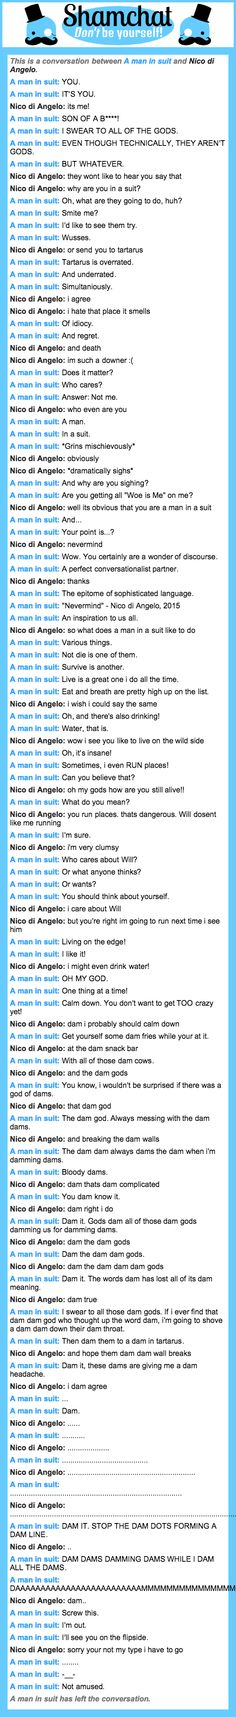 A conversation between Nico di Angelo and A man in suit